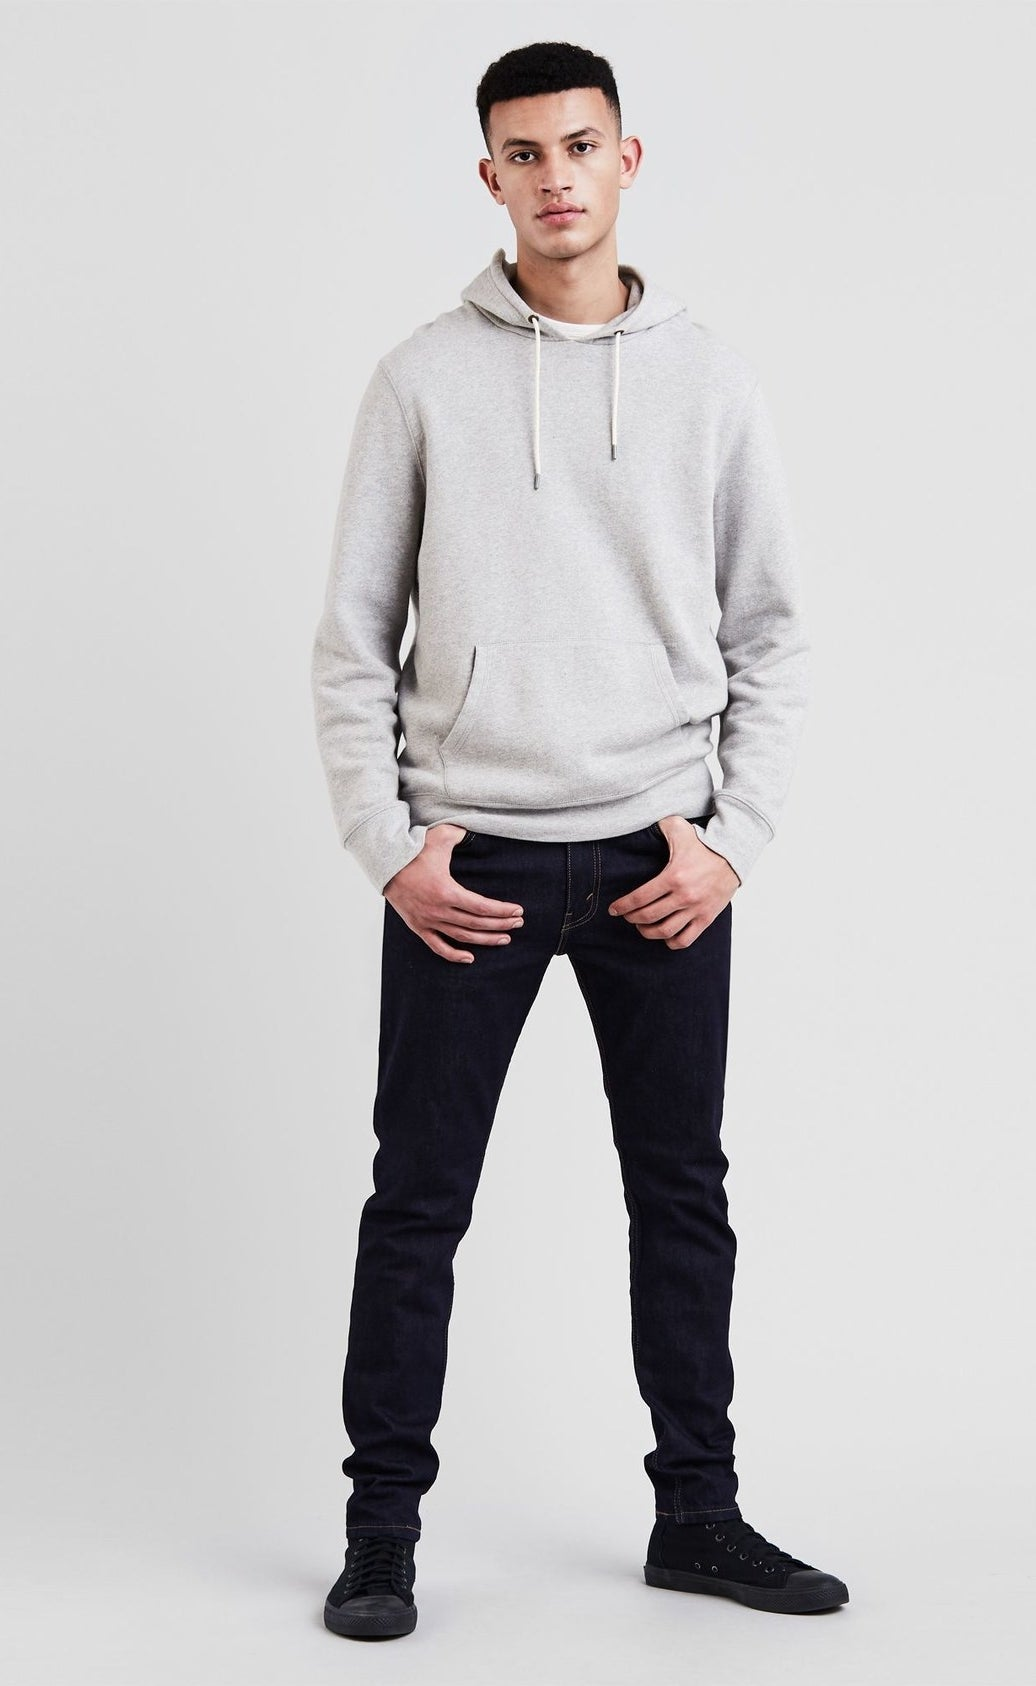 model wearing dark wash jeans with a gray hoodie